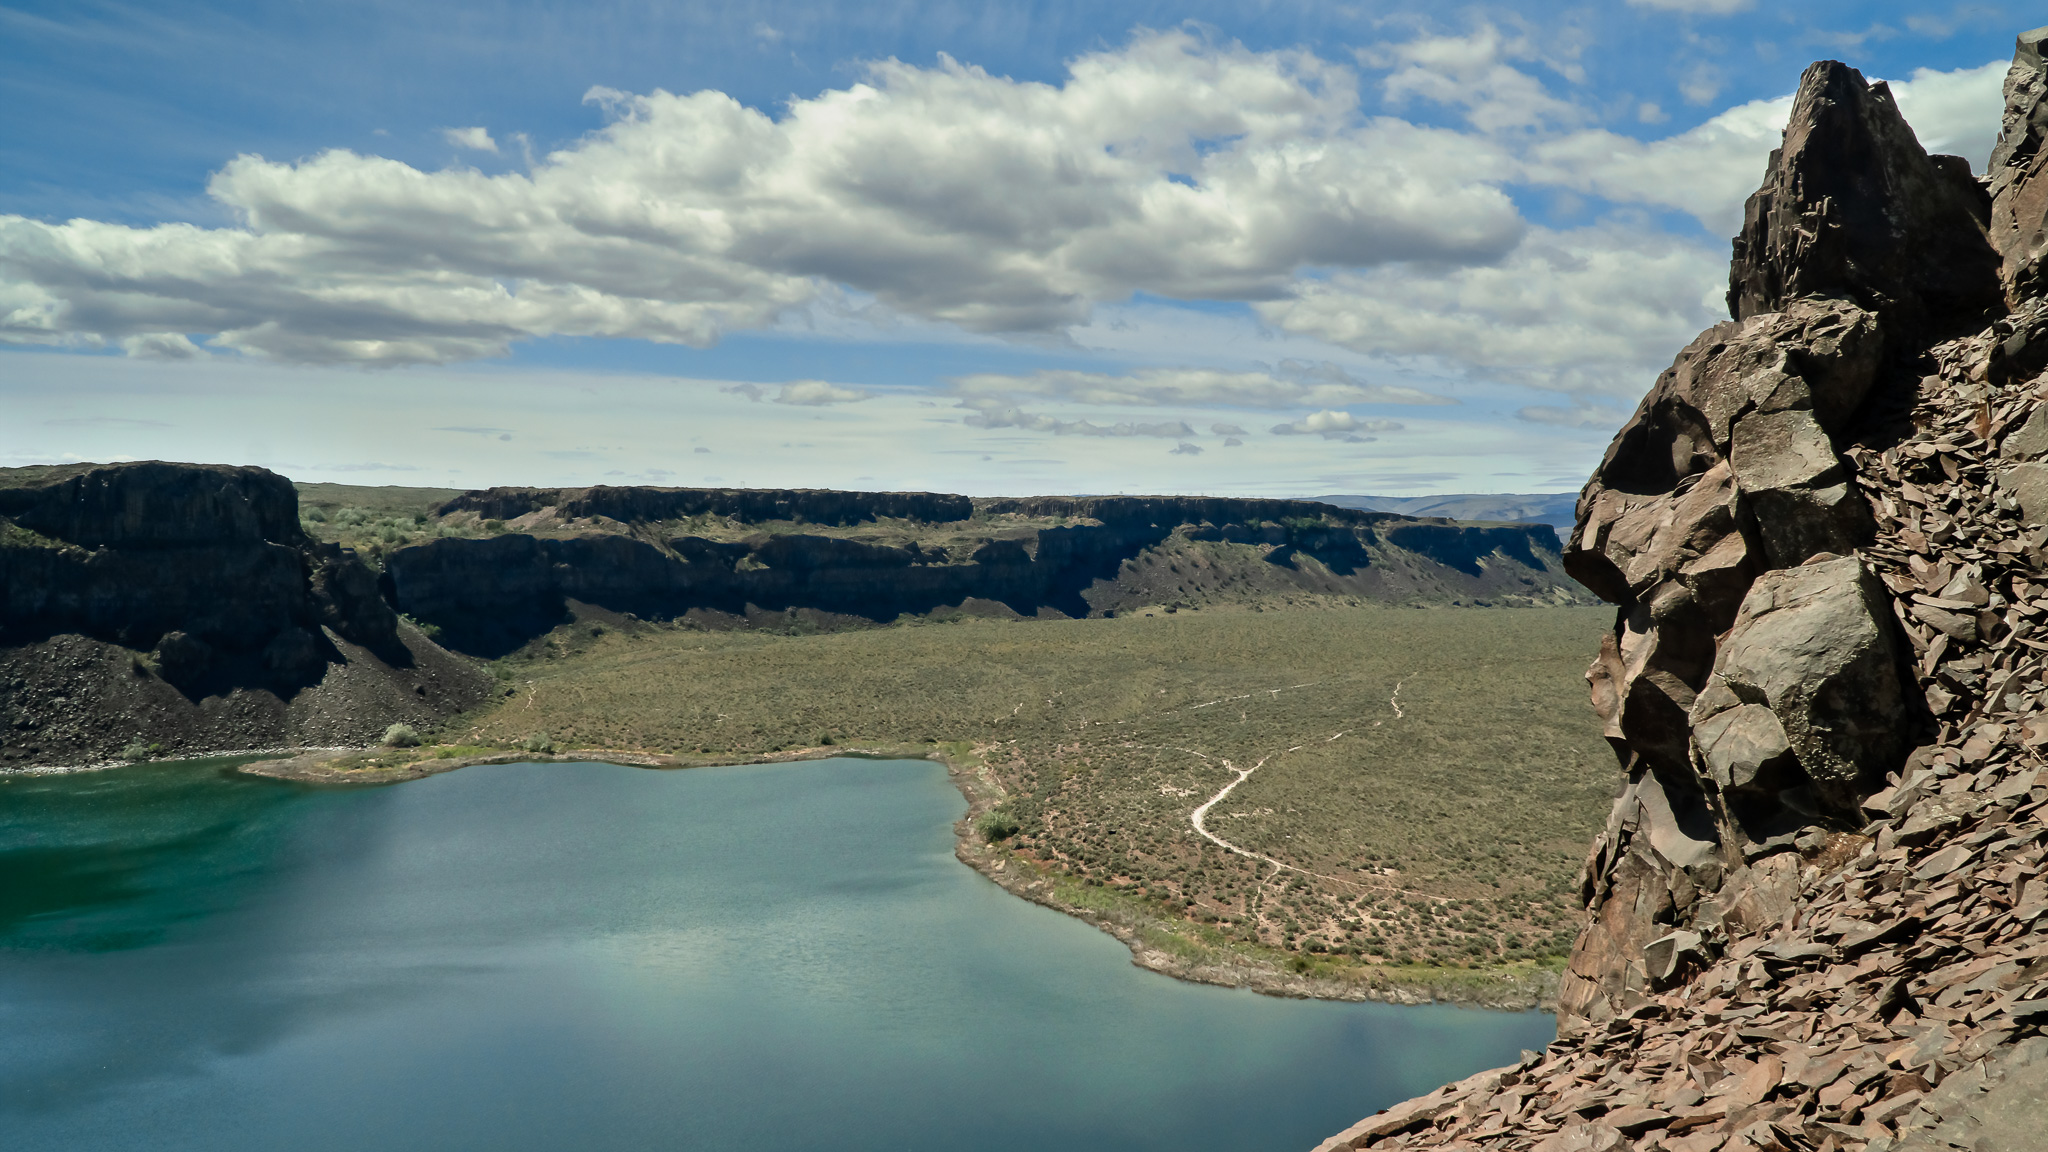 Having hiked up to the saddle between coulees we were able to look down at Dusty Lakes.